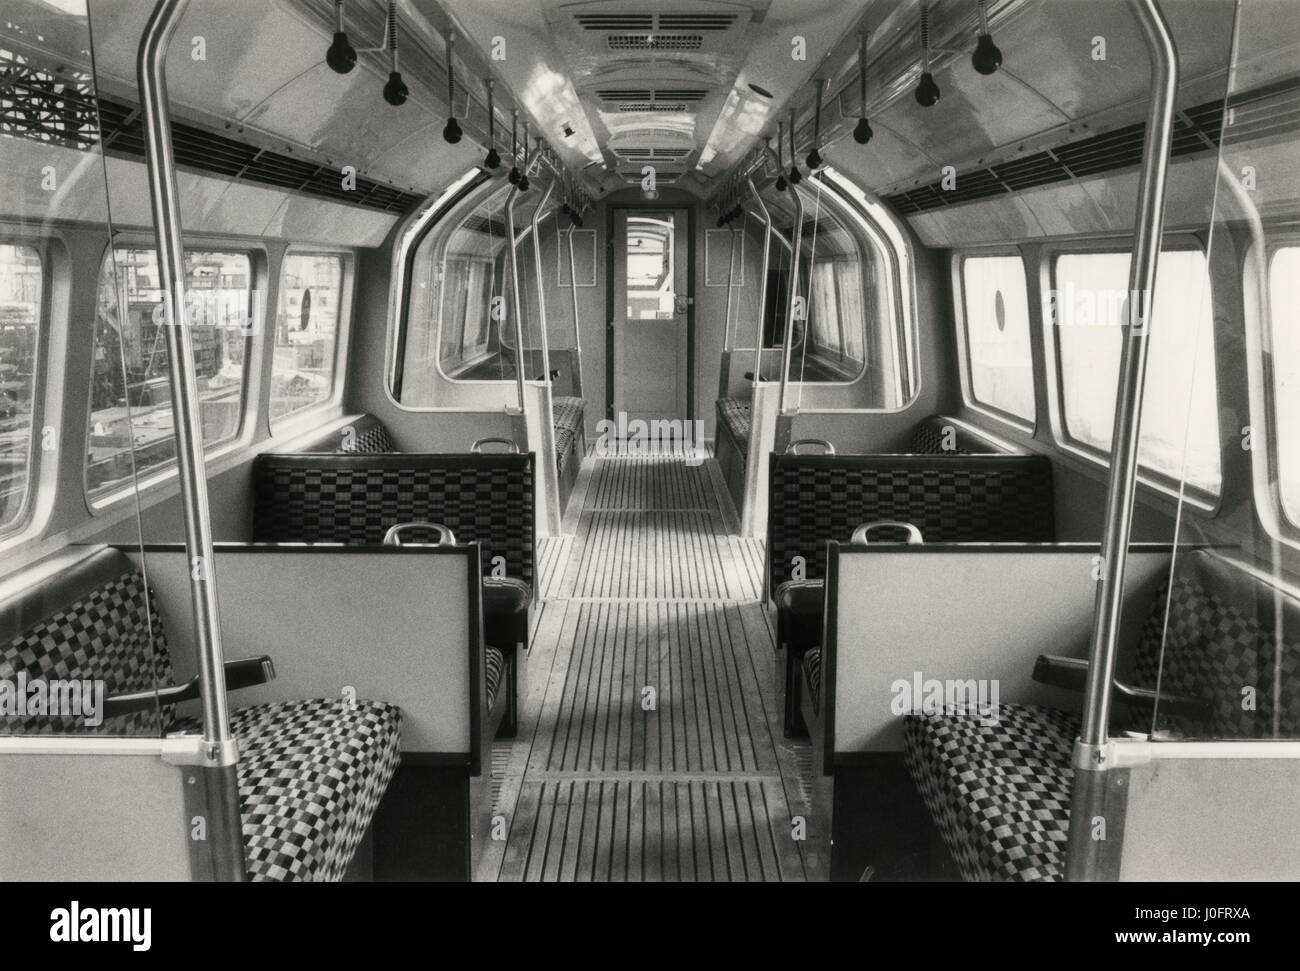 Carriage interior of a London Underground car Stock Photo